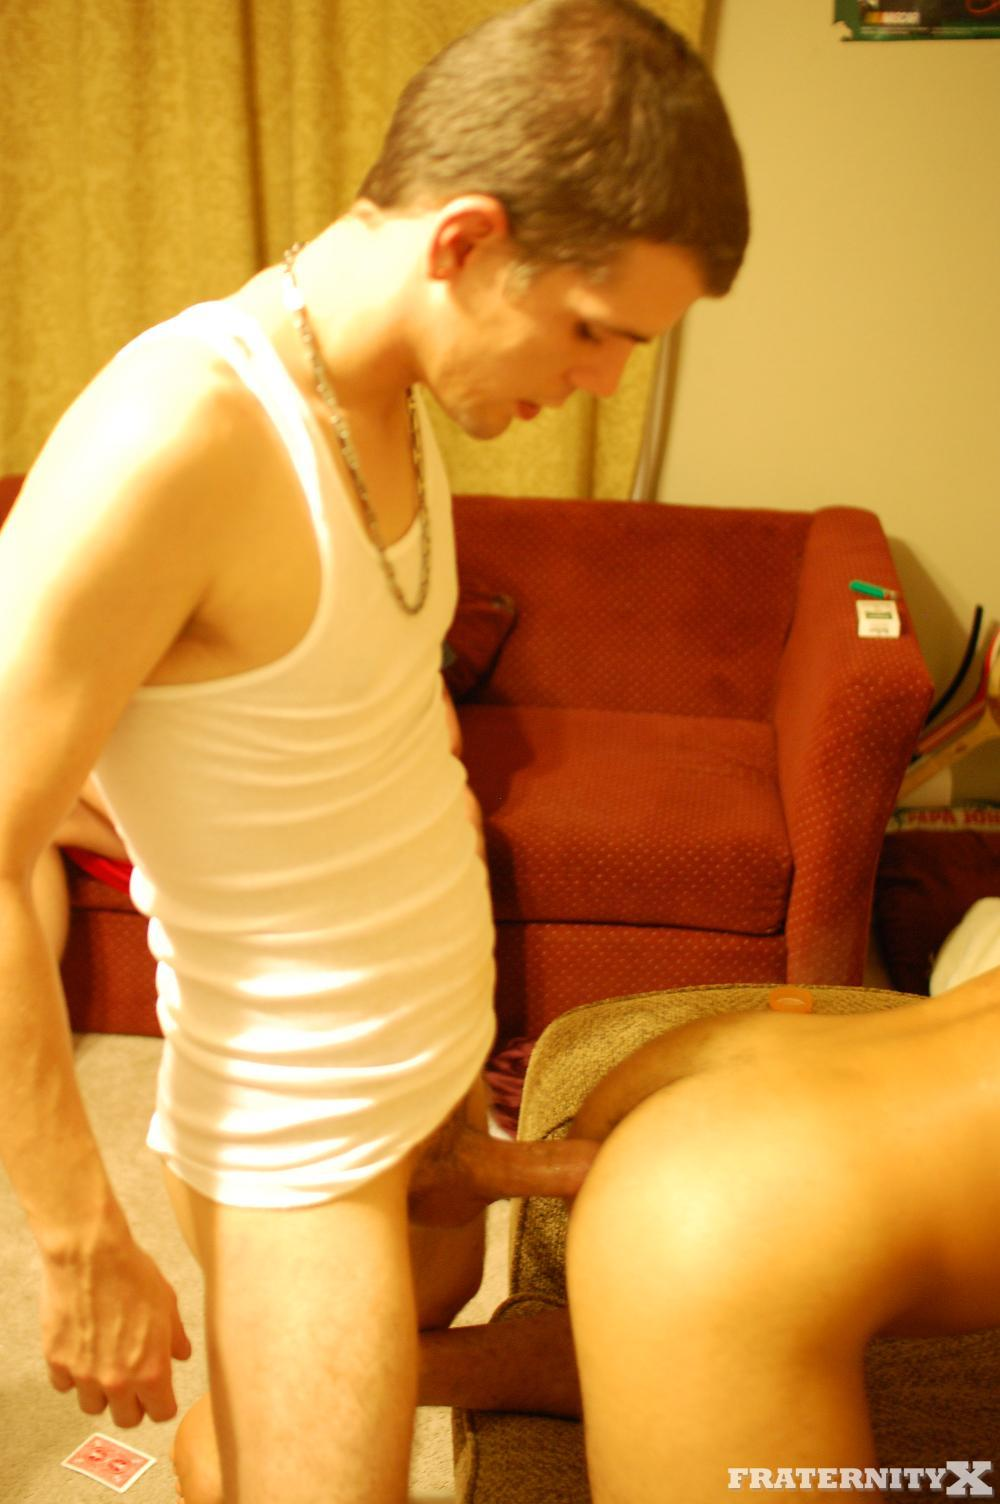 Fraternity-X-Pays-The-Rent-Straight-Amatuer-Bareback-Fucking-19 Real Amateur Straight Fraternity Boys Fucking Bareback